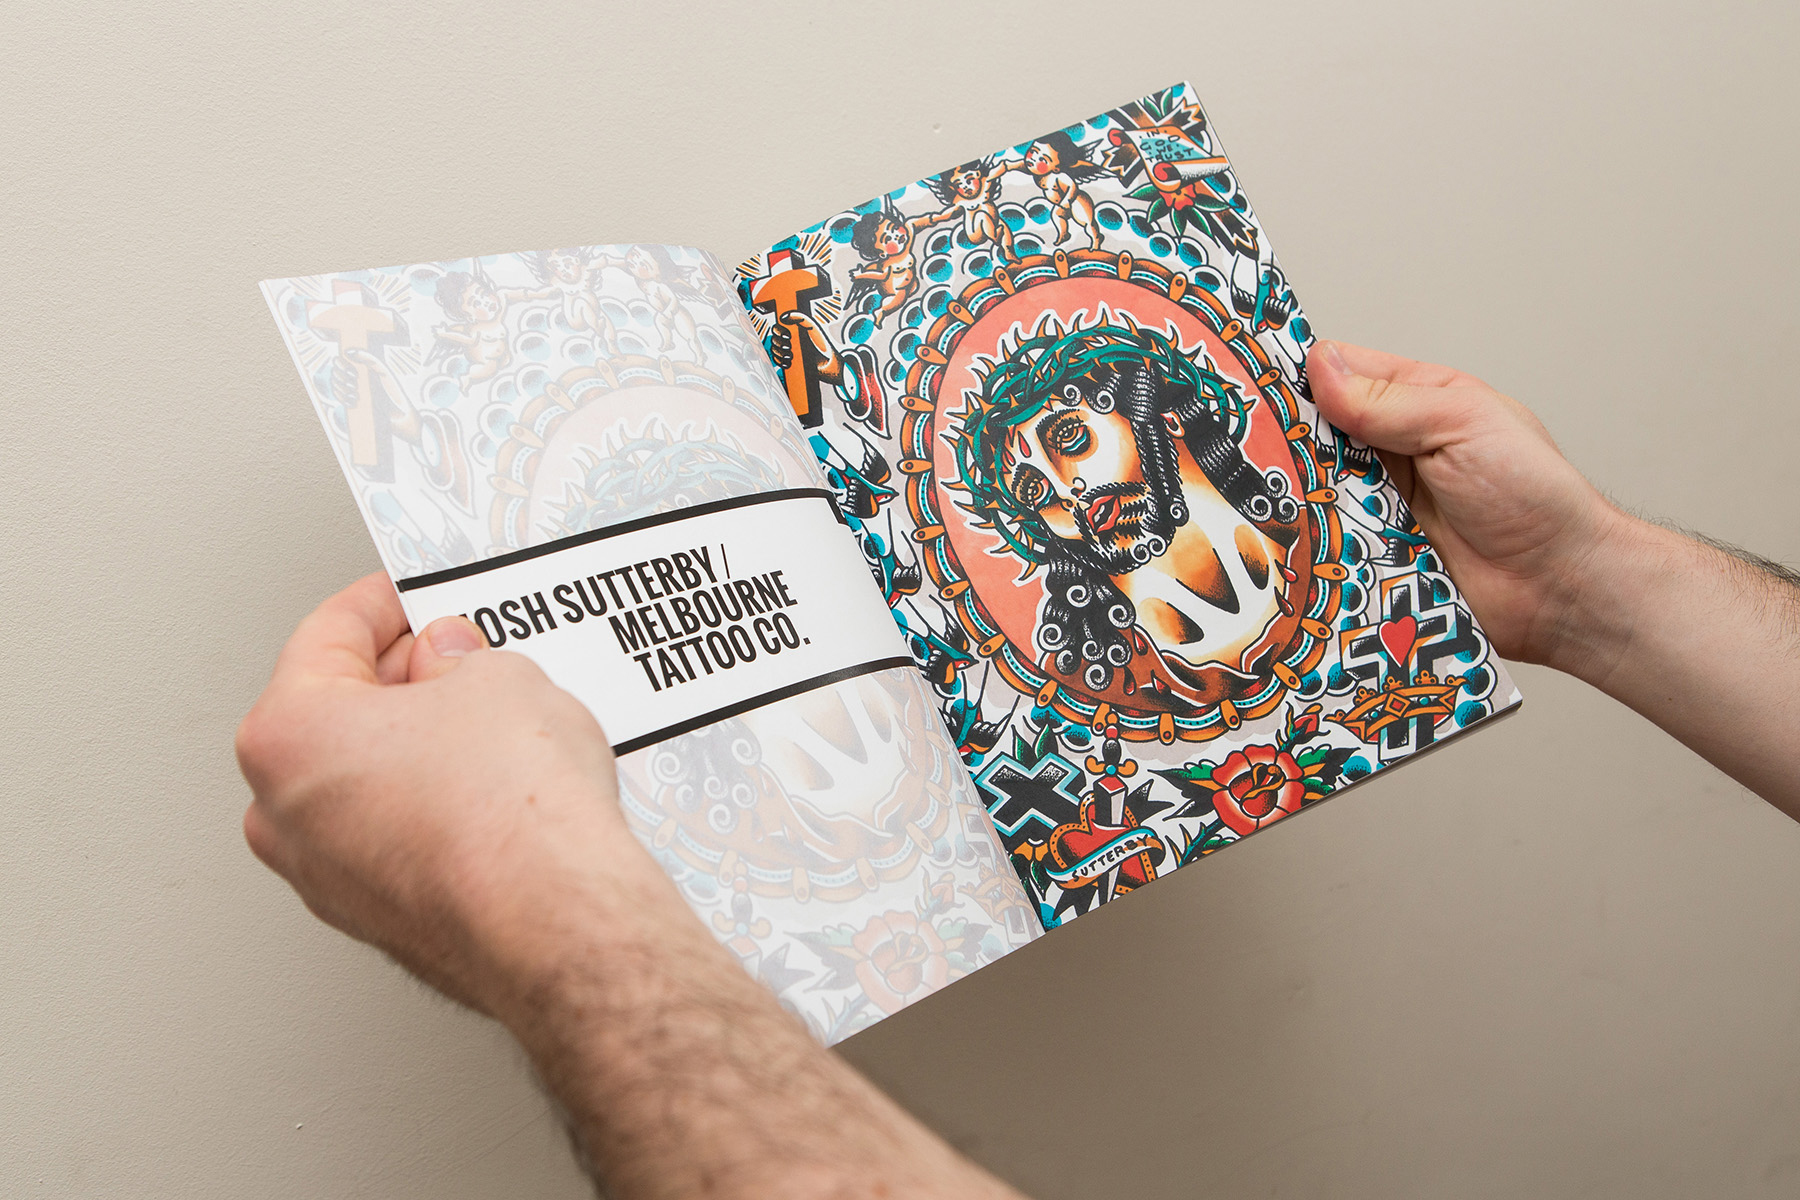 'Swallows & Daggers' Zine Launches With an Issue on Religious Tattoos